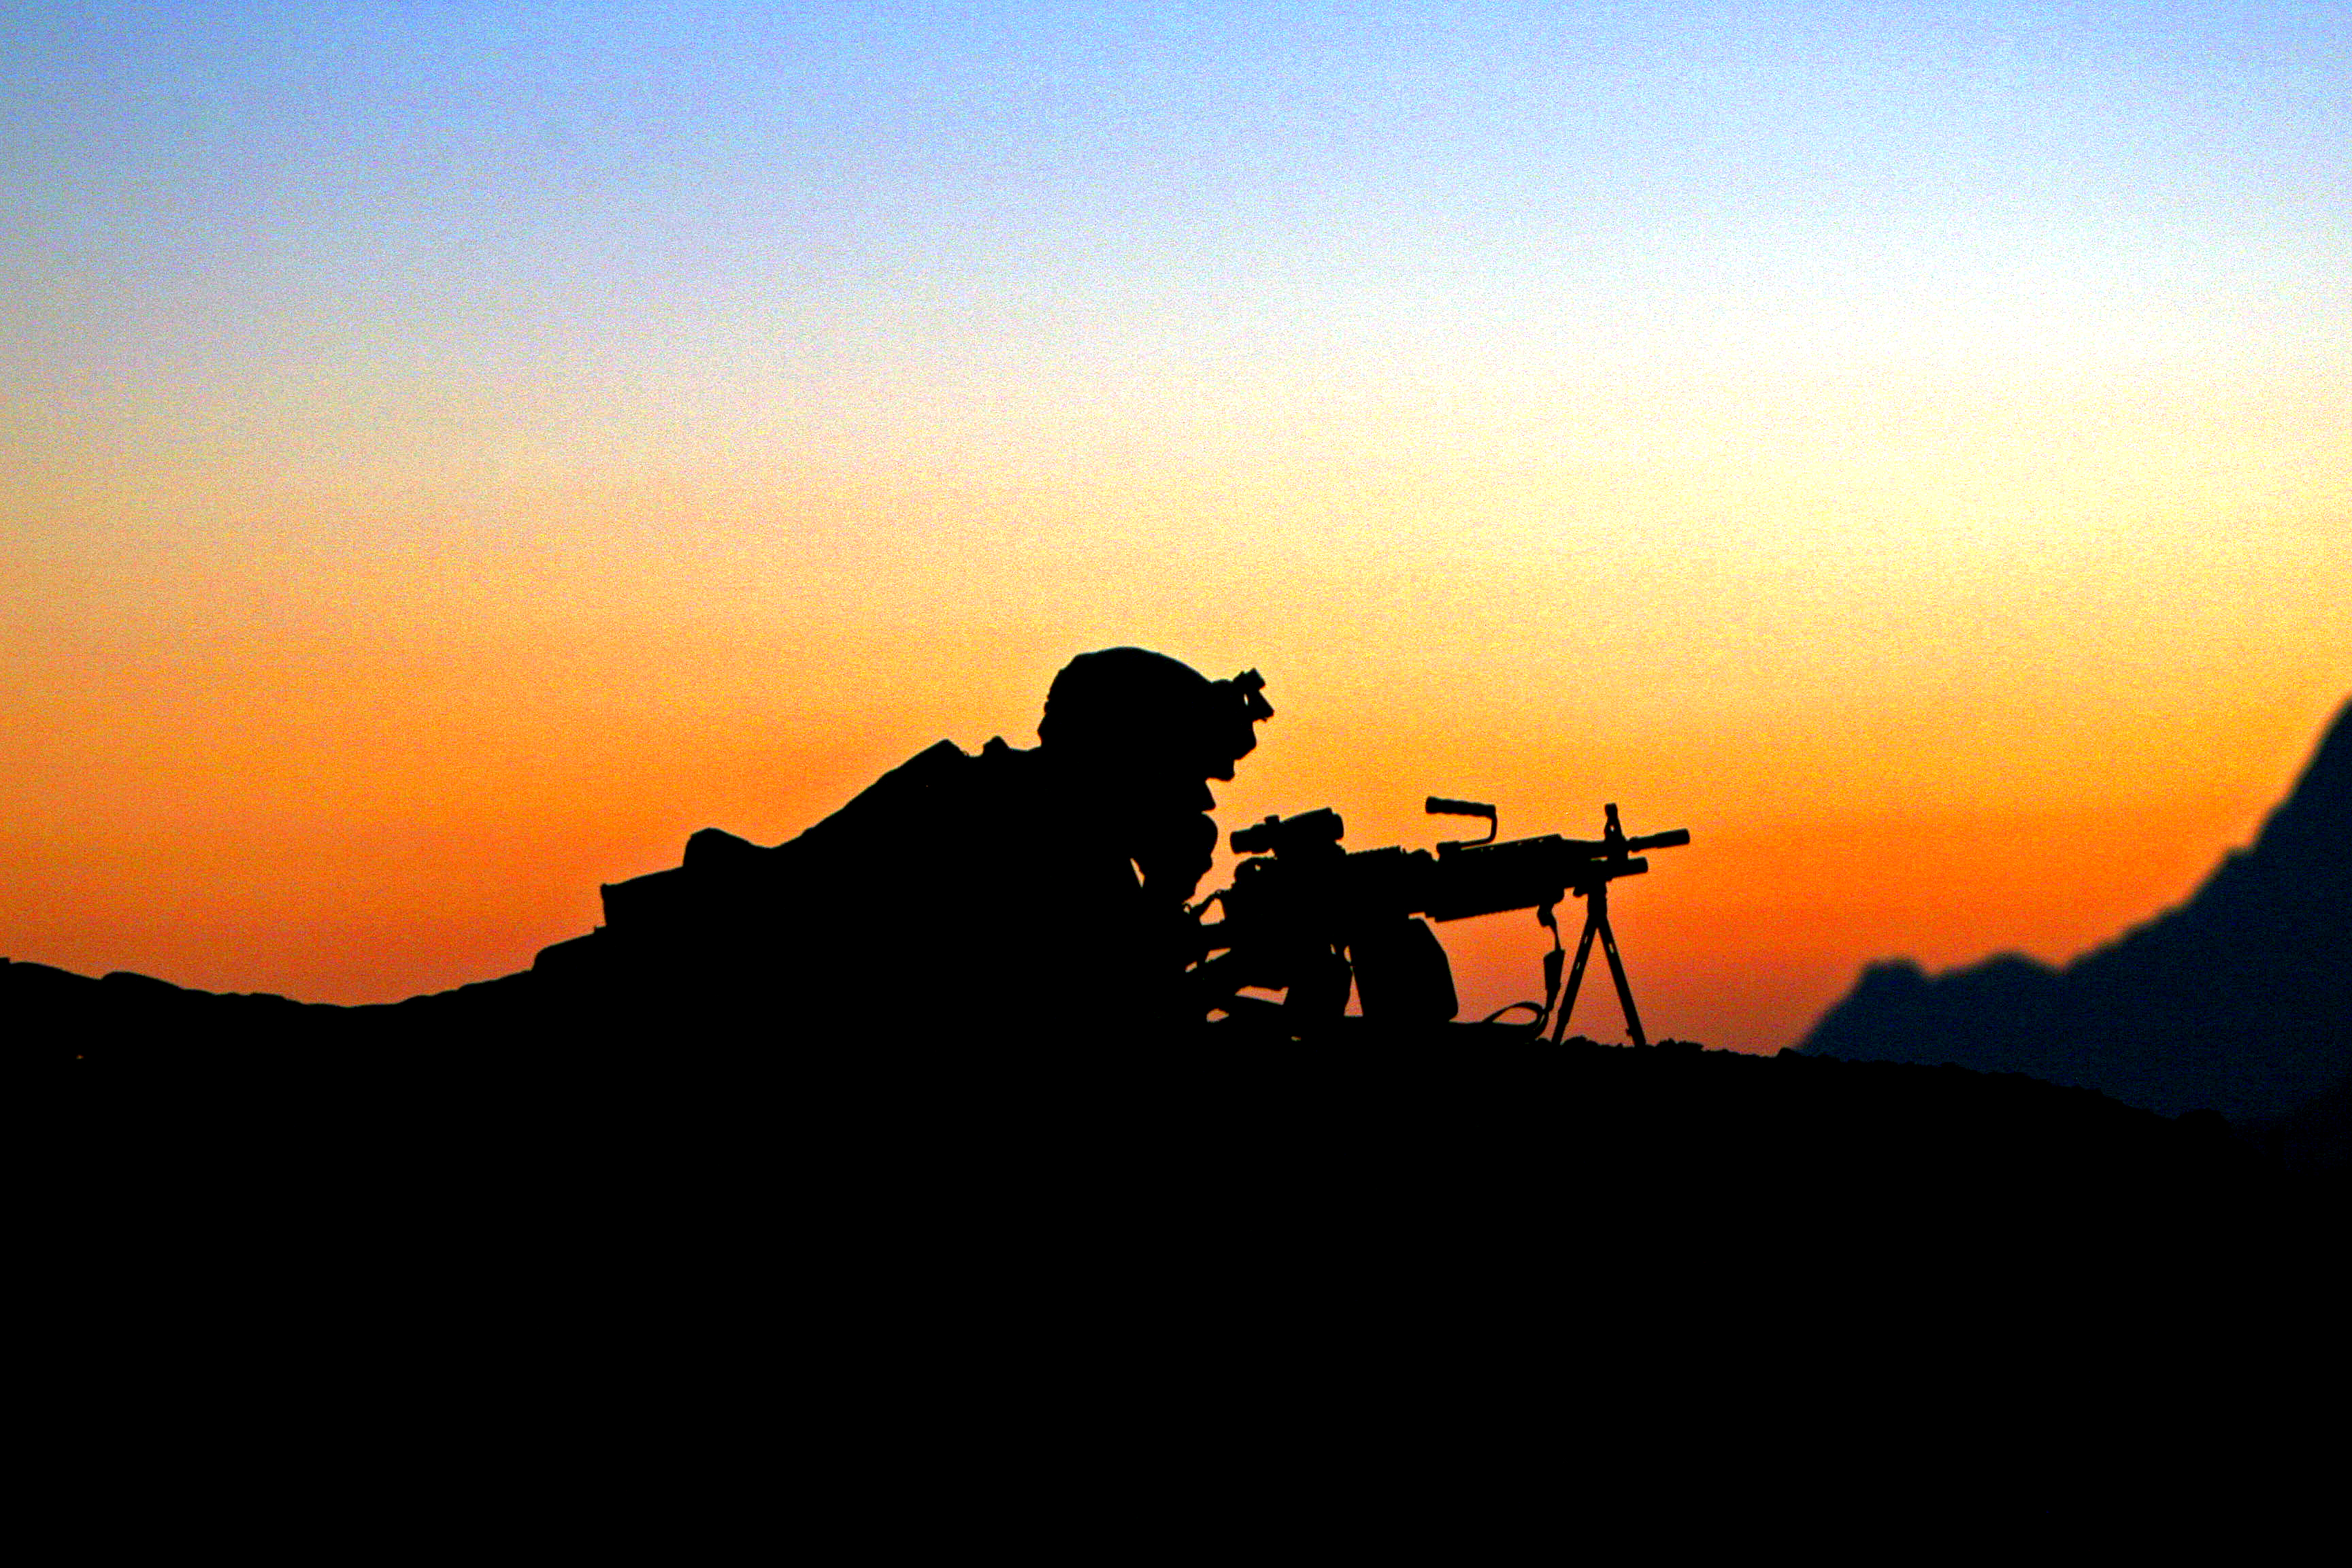 Sniper clipart american soldier Public Military Free Domain image